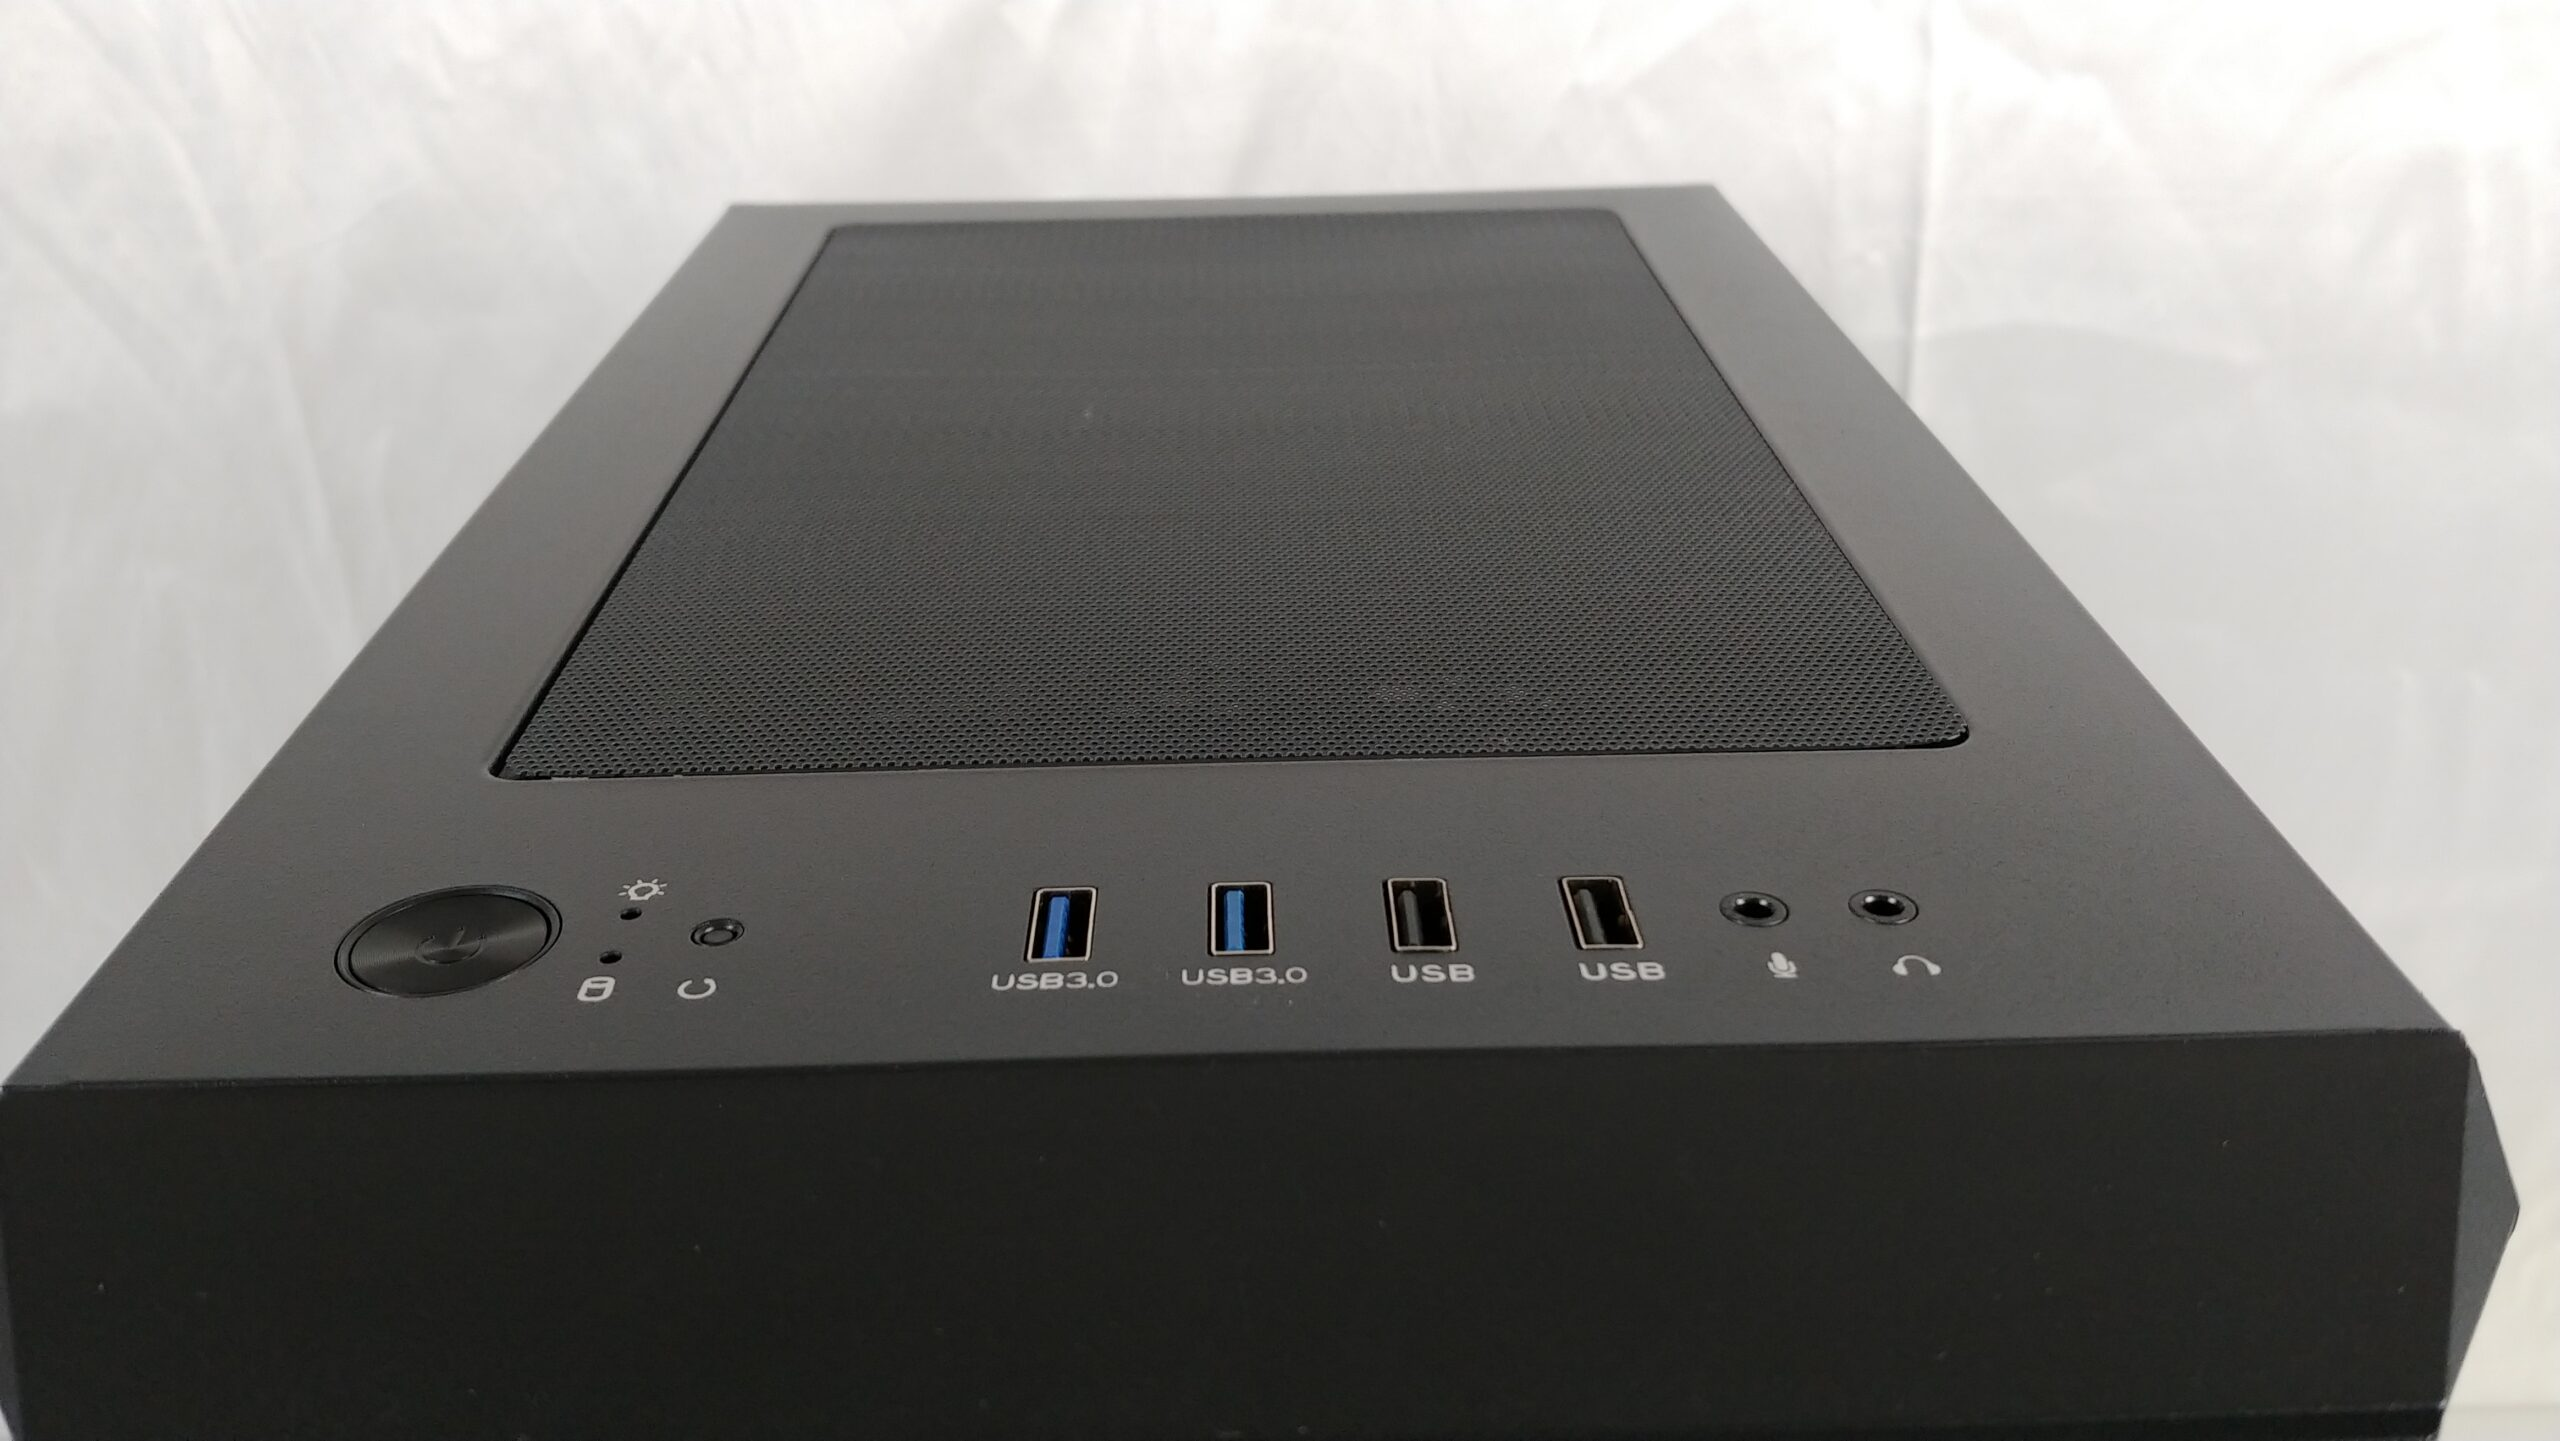 Top view of the FSP CMT260 with I/O panel.